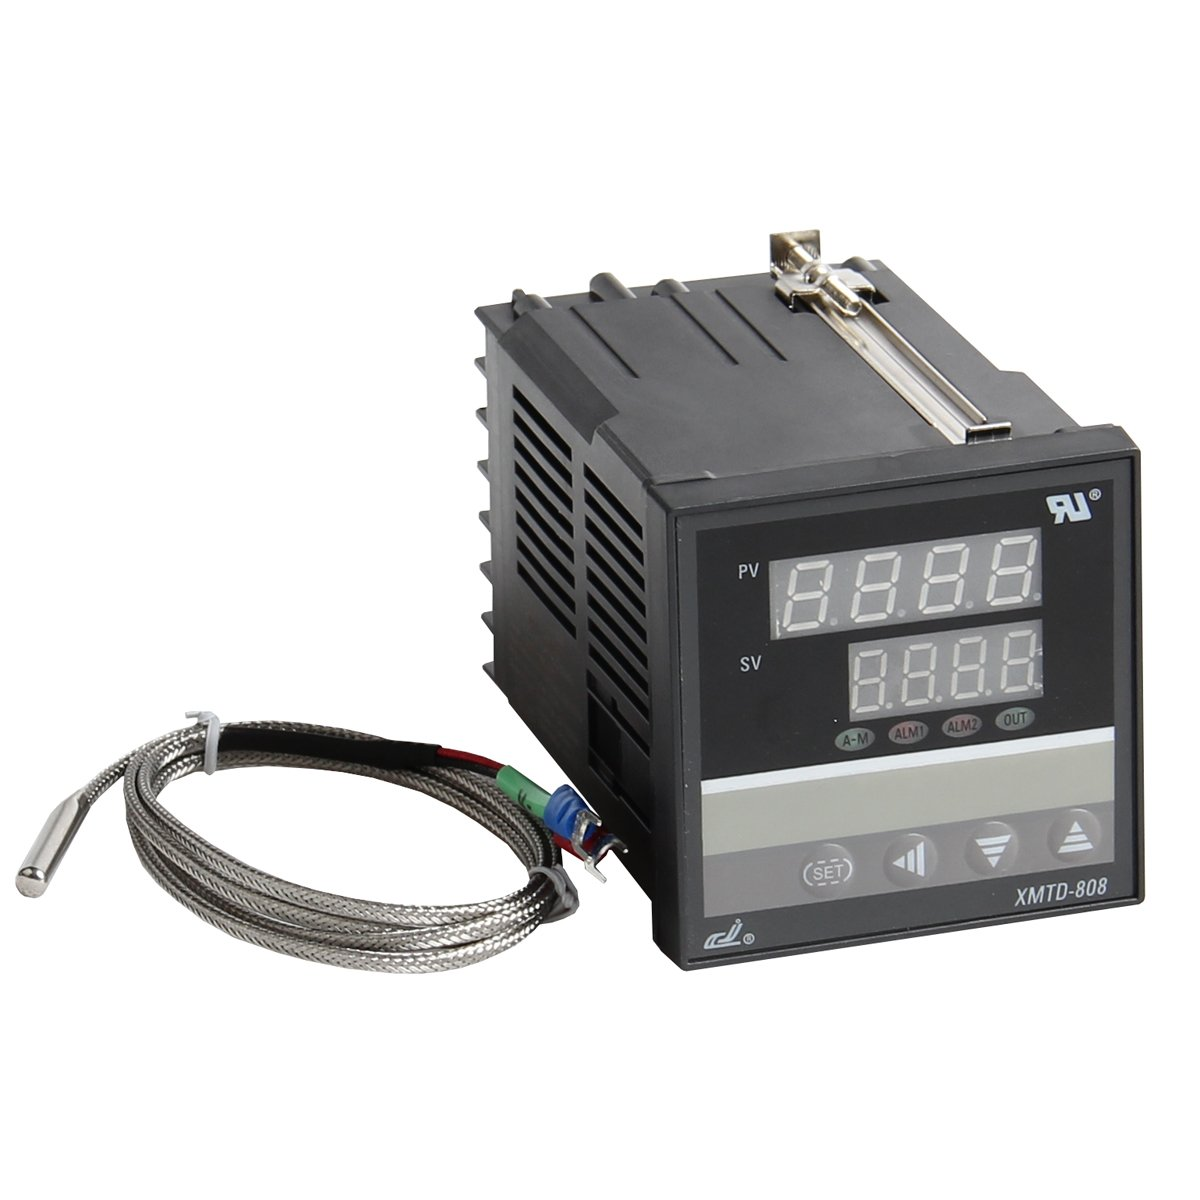 CJ XMTD-808 All Signal Multi-Purpose Input LED Display PID Temperature Control with K Sensor